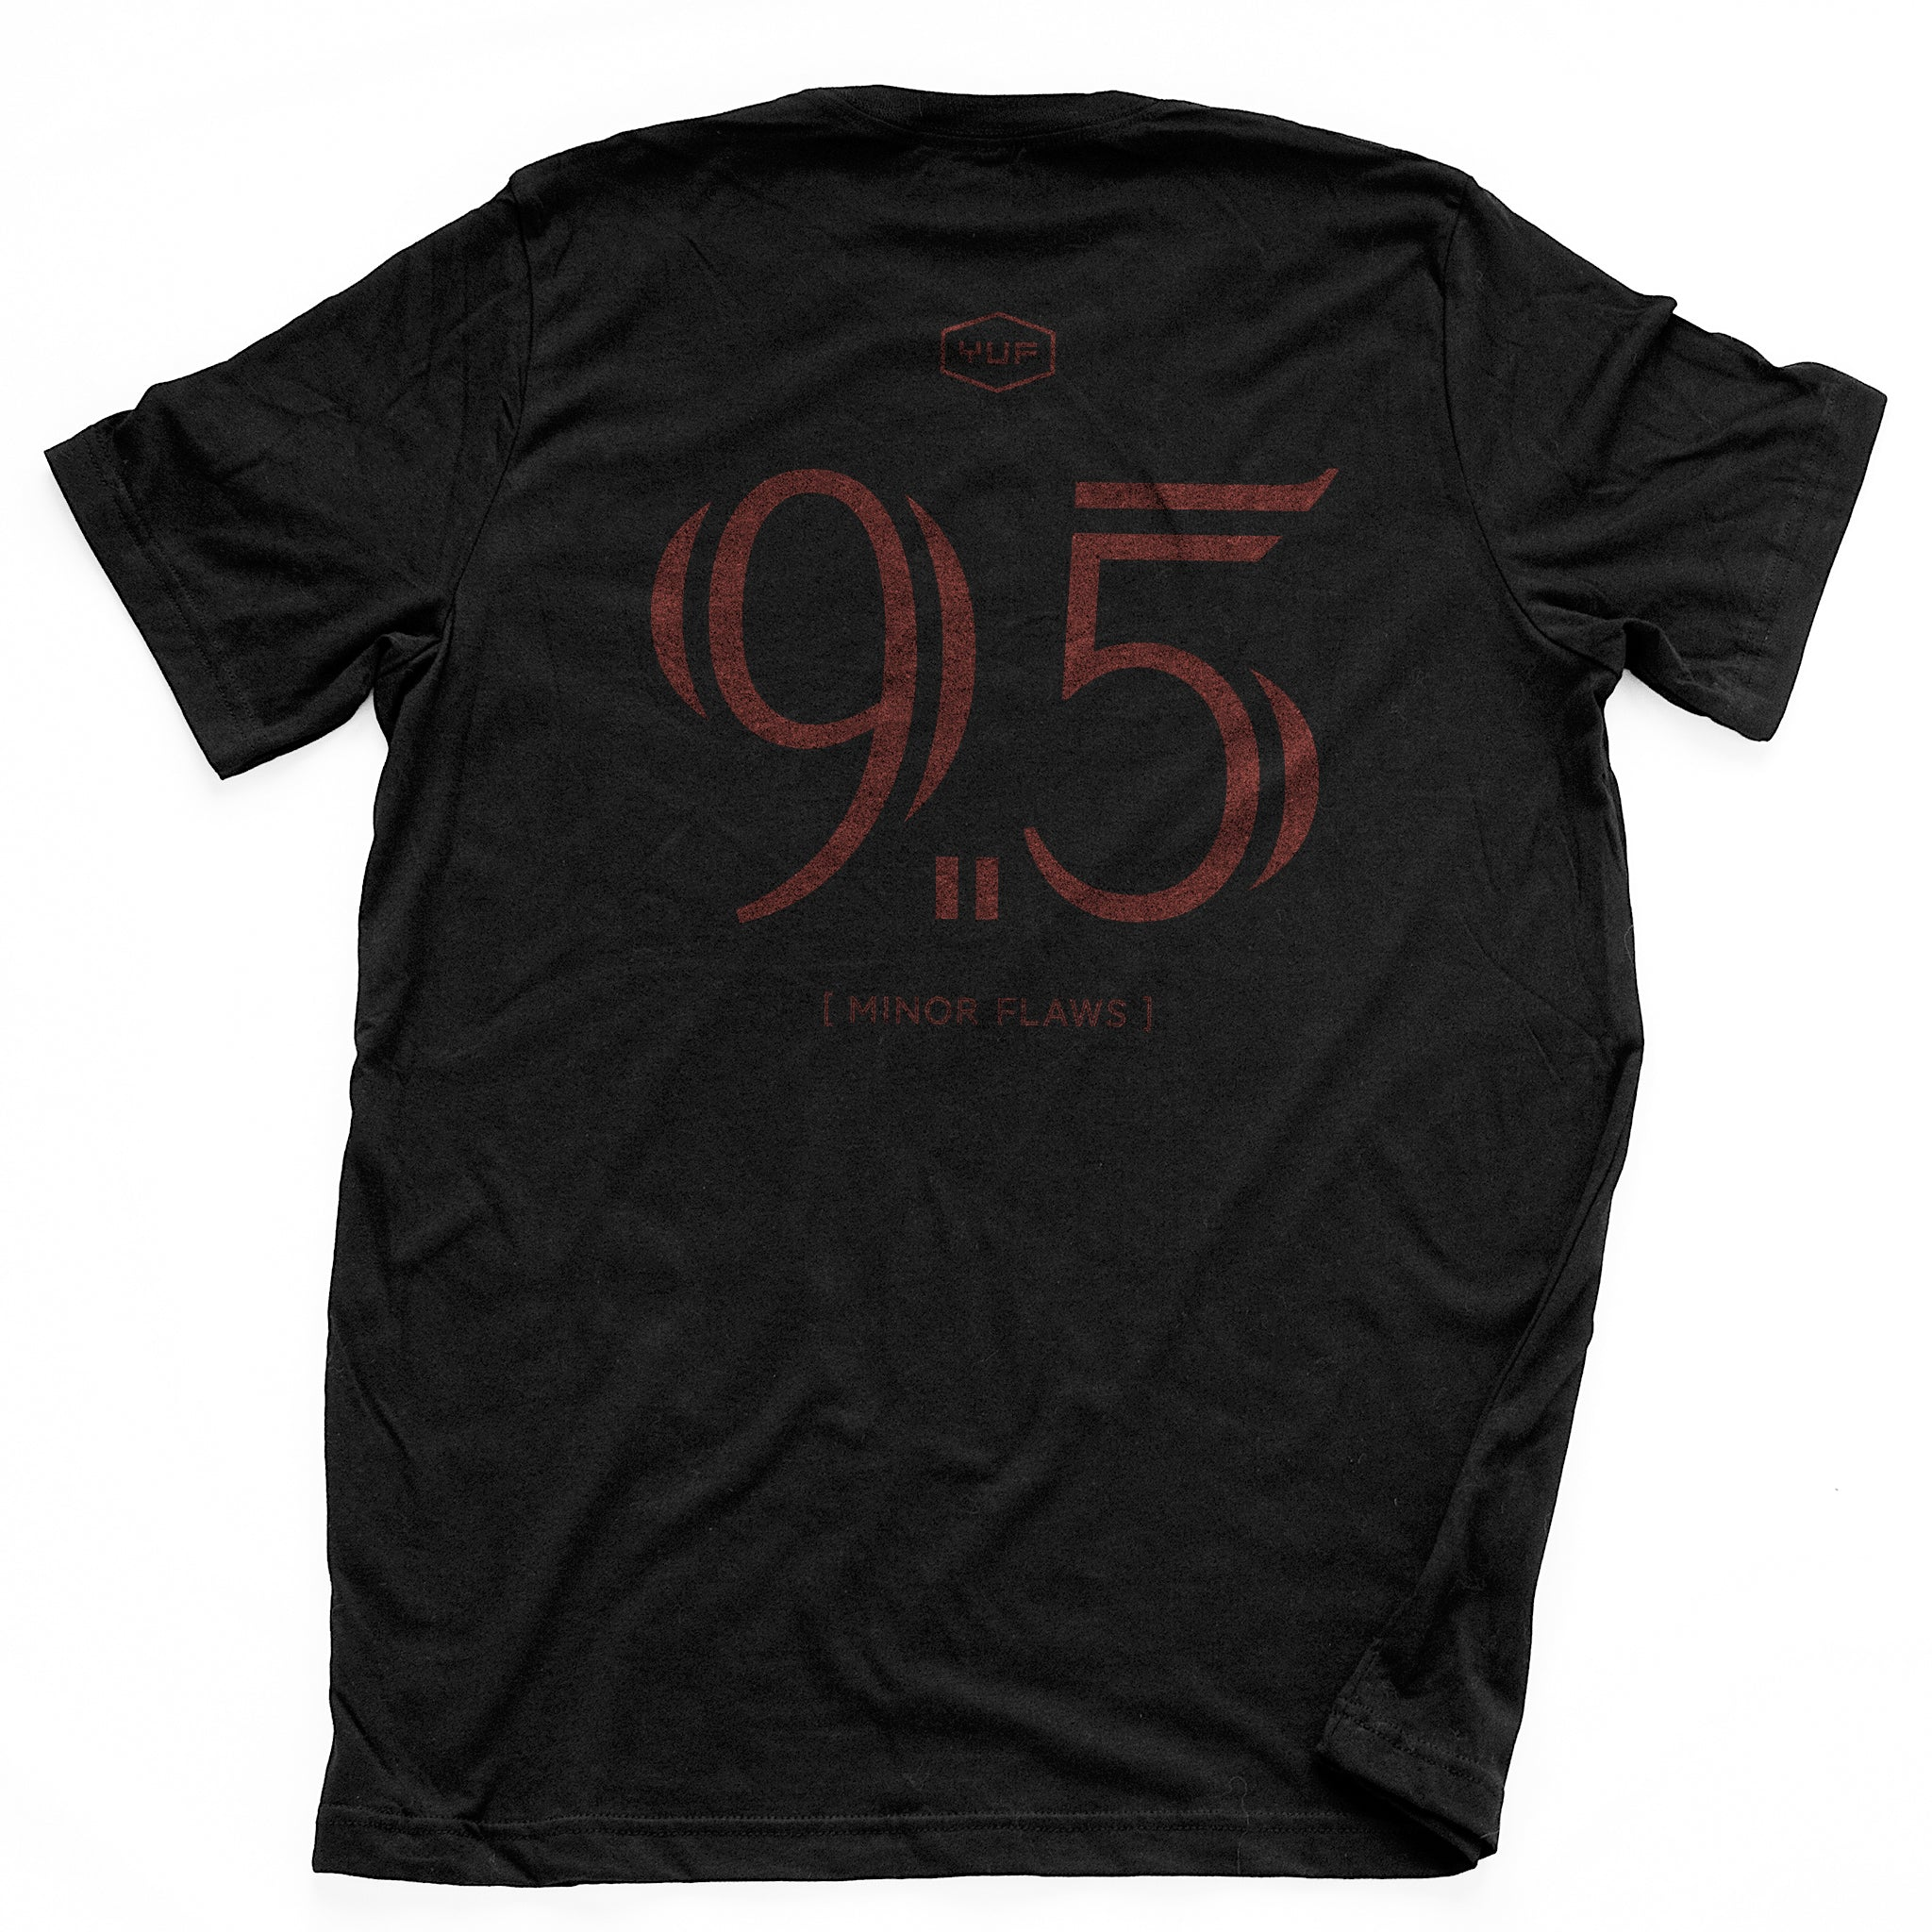 "Black sarcastic, ironic t-shirt with mocking, self-deprecating large ""9.5"" graphic, referring to 'almost a perfect 10' in the style of a sports jersey"